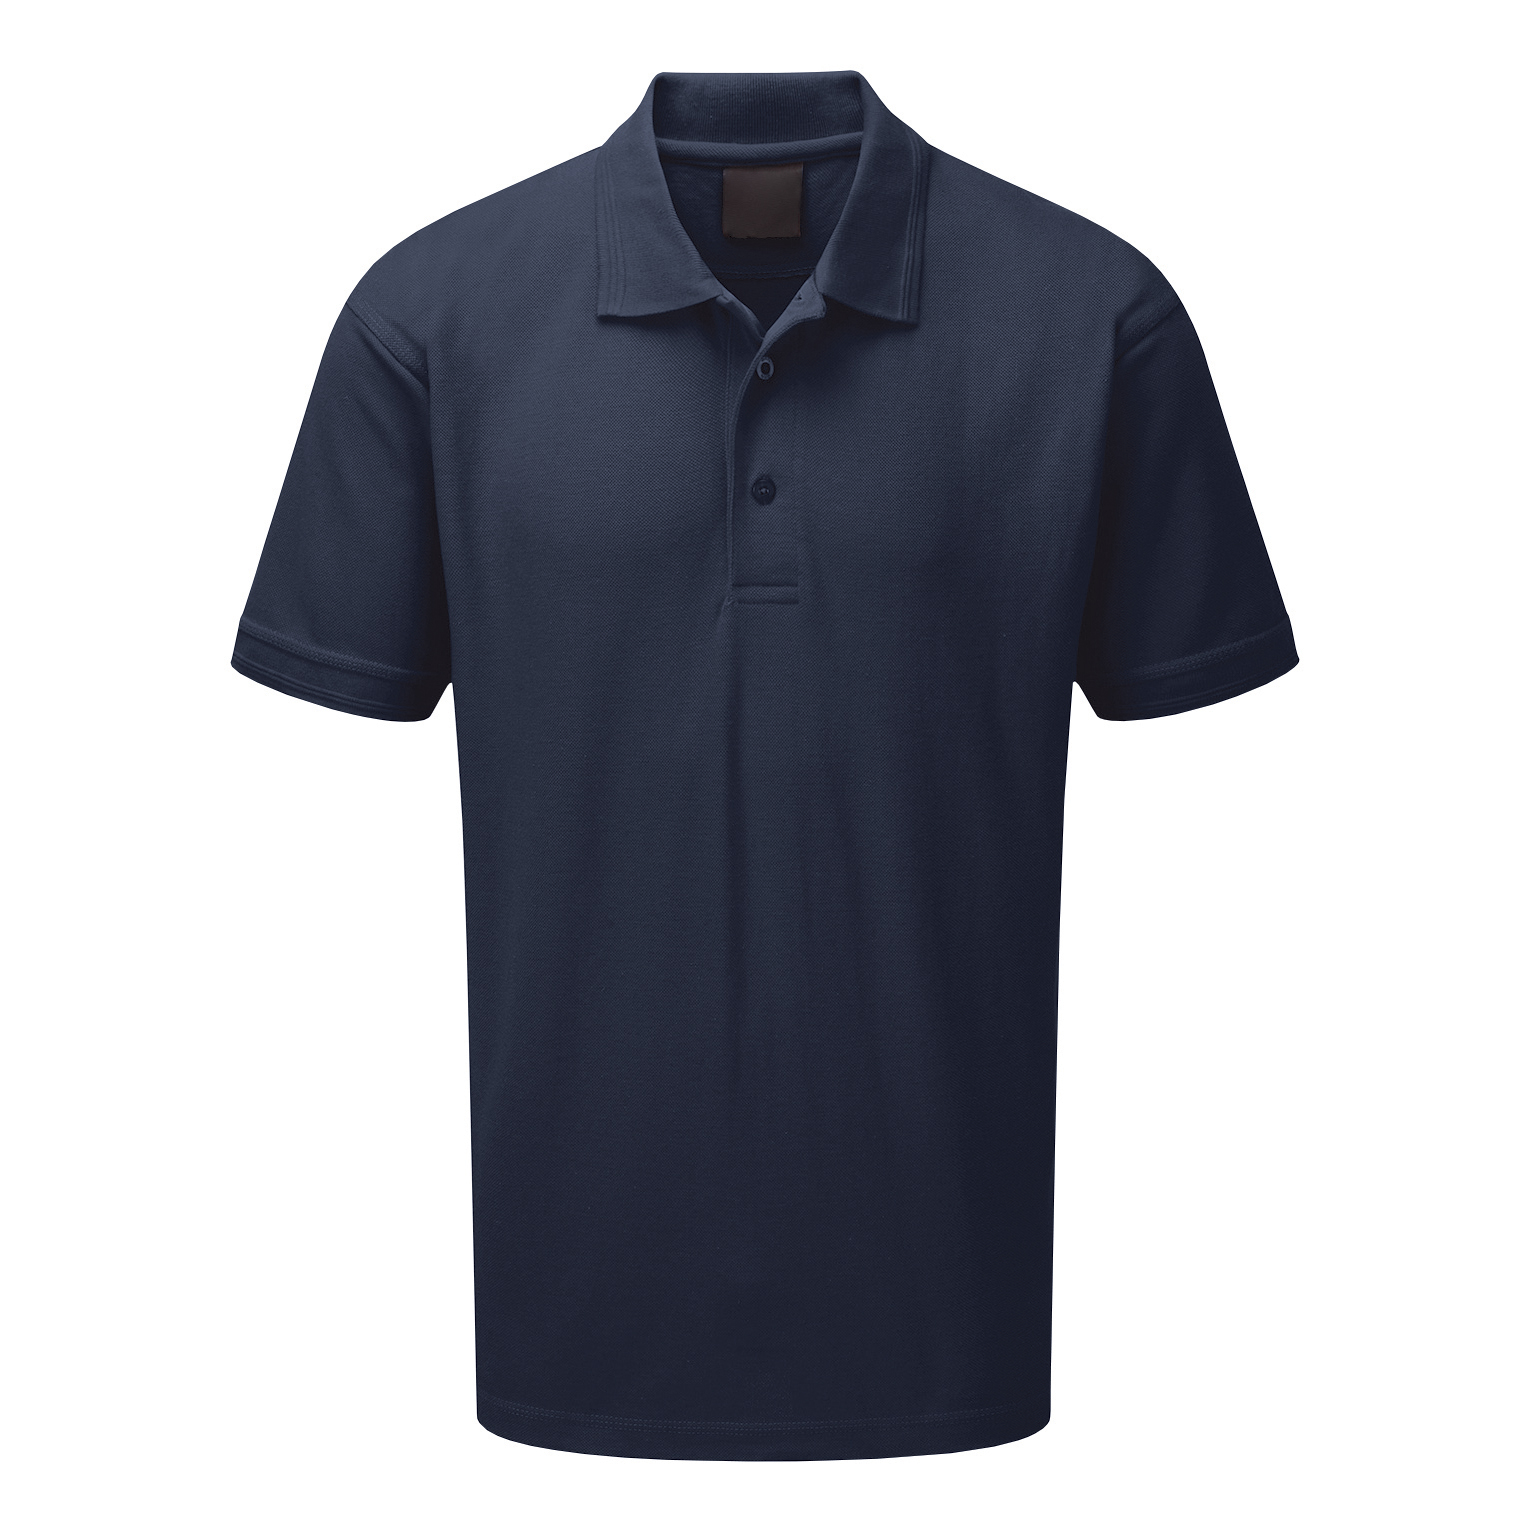 Click Workwear Polo Shirt Polycotton 200gsm XL Navy Blue Ref CLPKSNXL 1-3 Days Lead Time